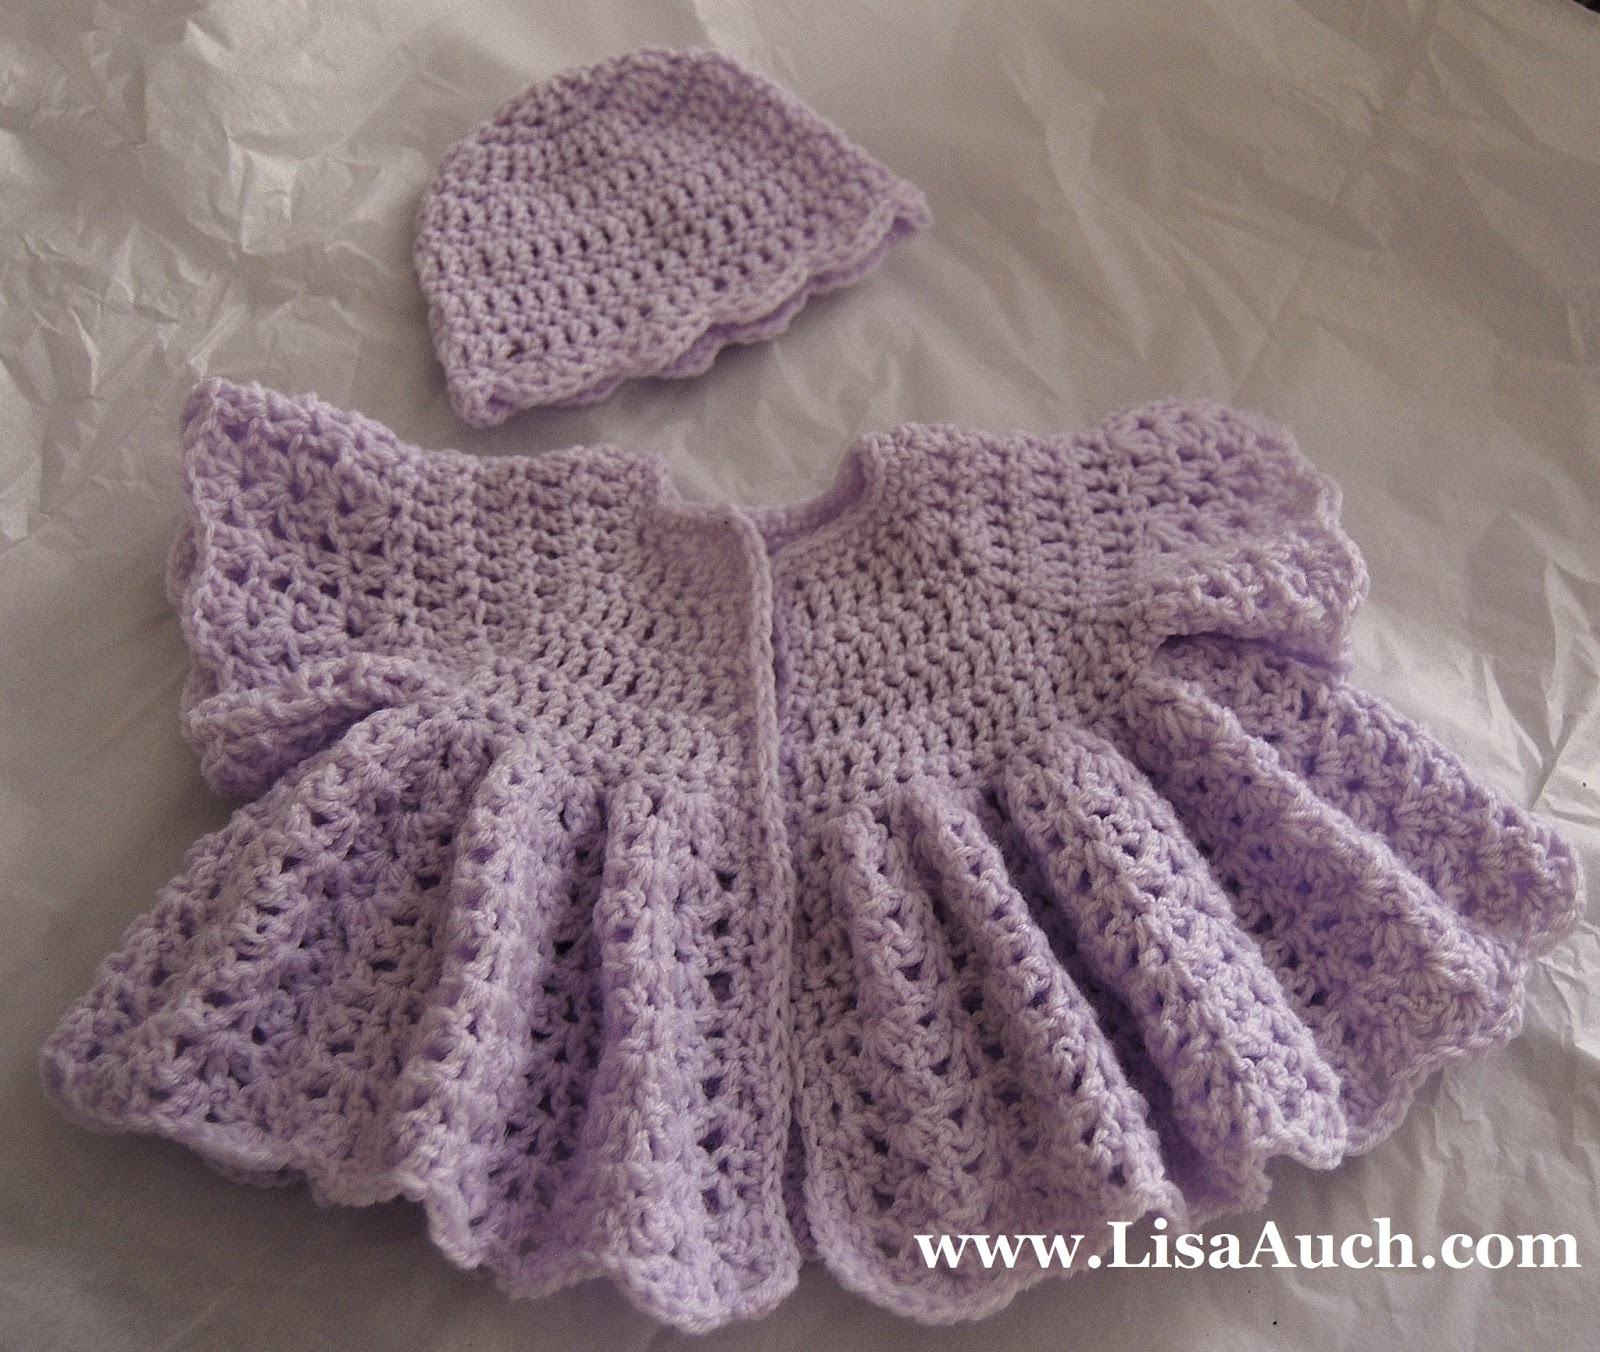 Crochet Baby Girl Cardigan Pattern Free : Free Crochet Sweater Patterns for Babies